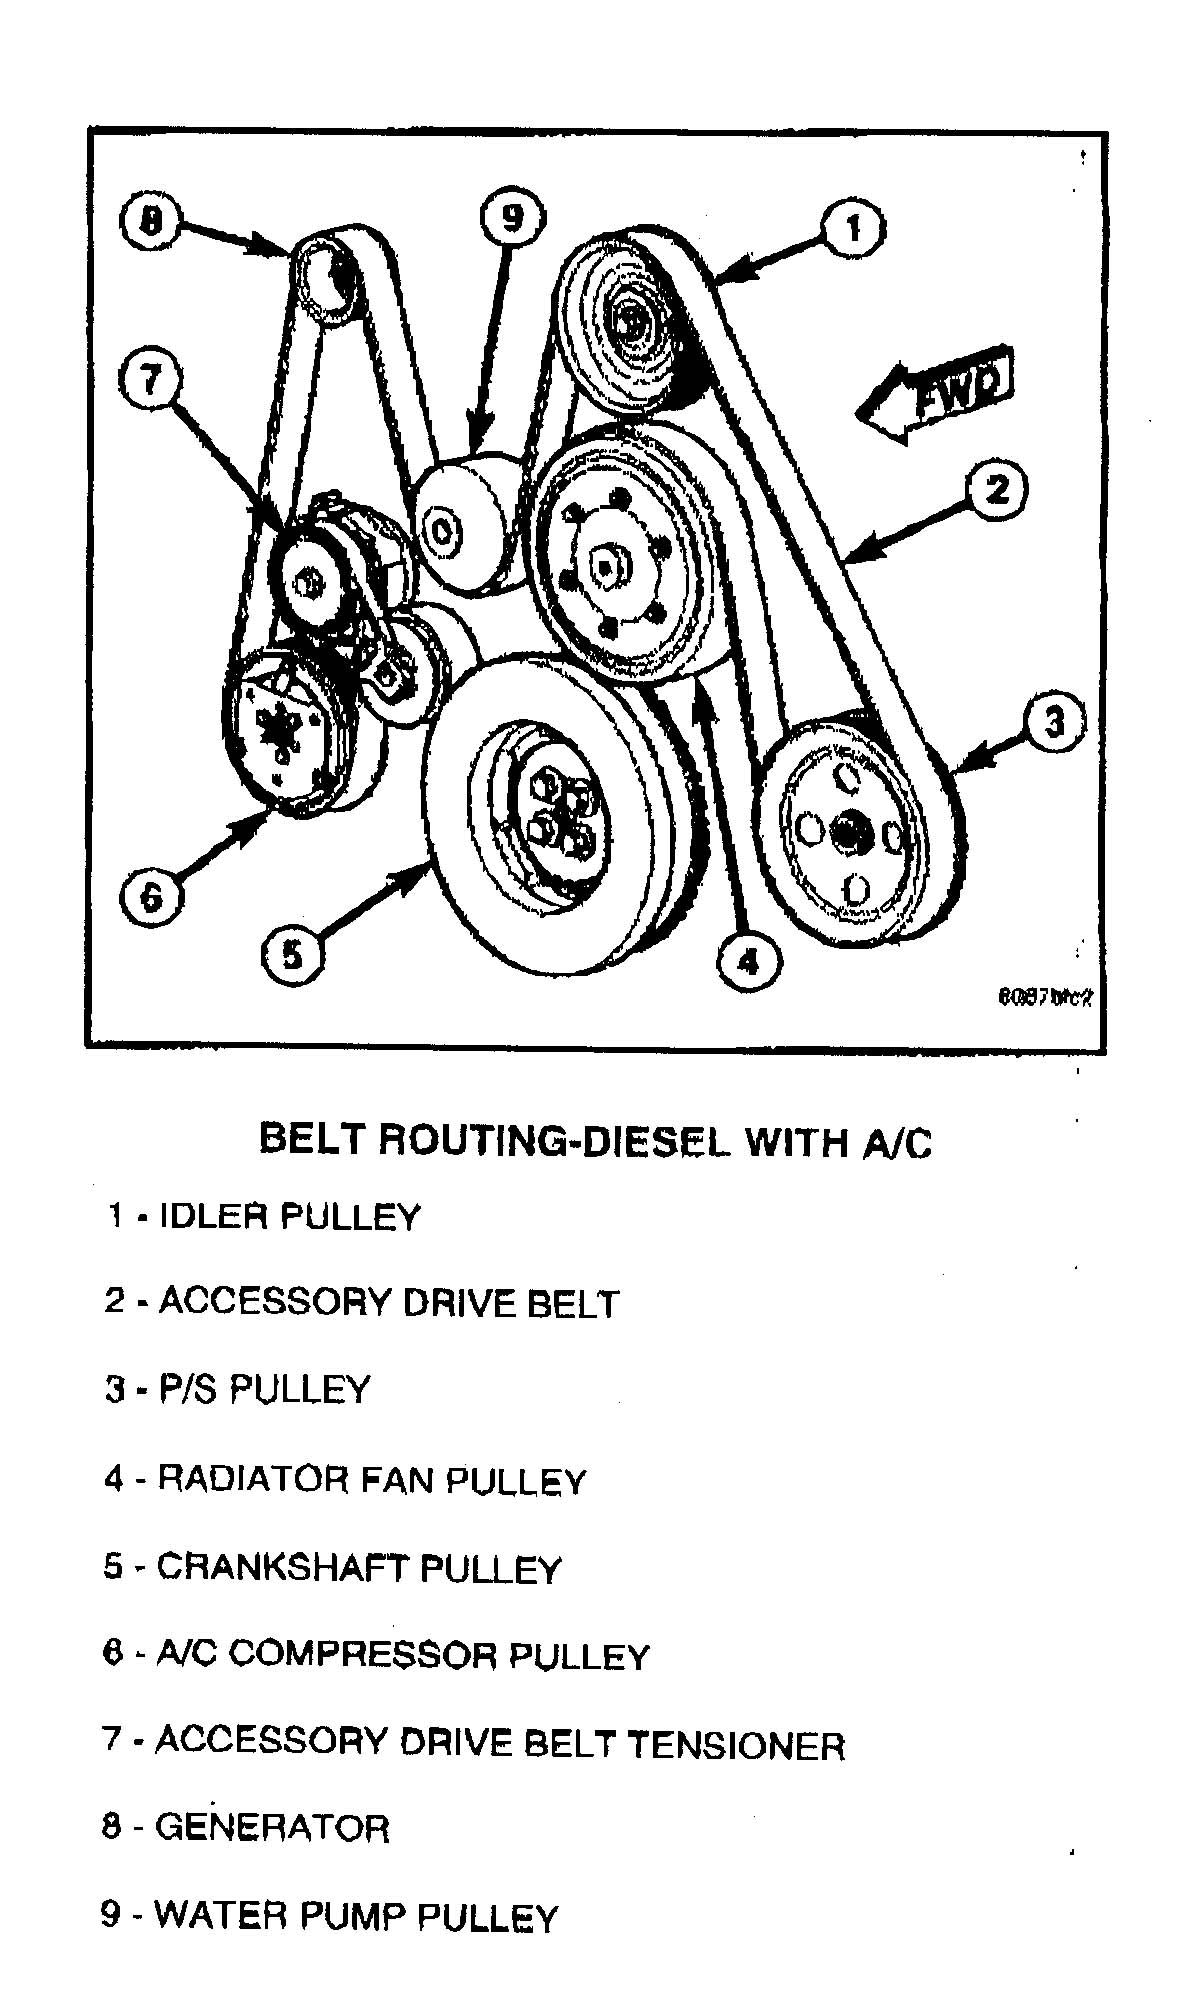 medium resolution of 6 7 belt routing diagram dodge diesel diesel truck resource forums dodge diesel diesel